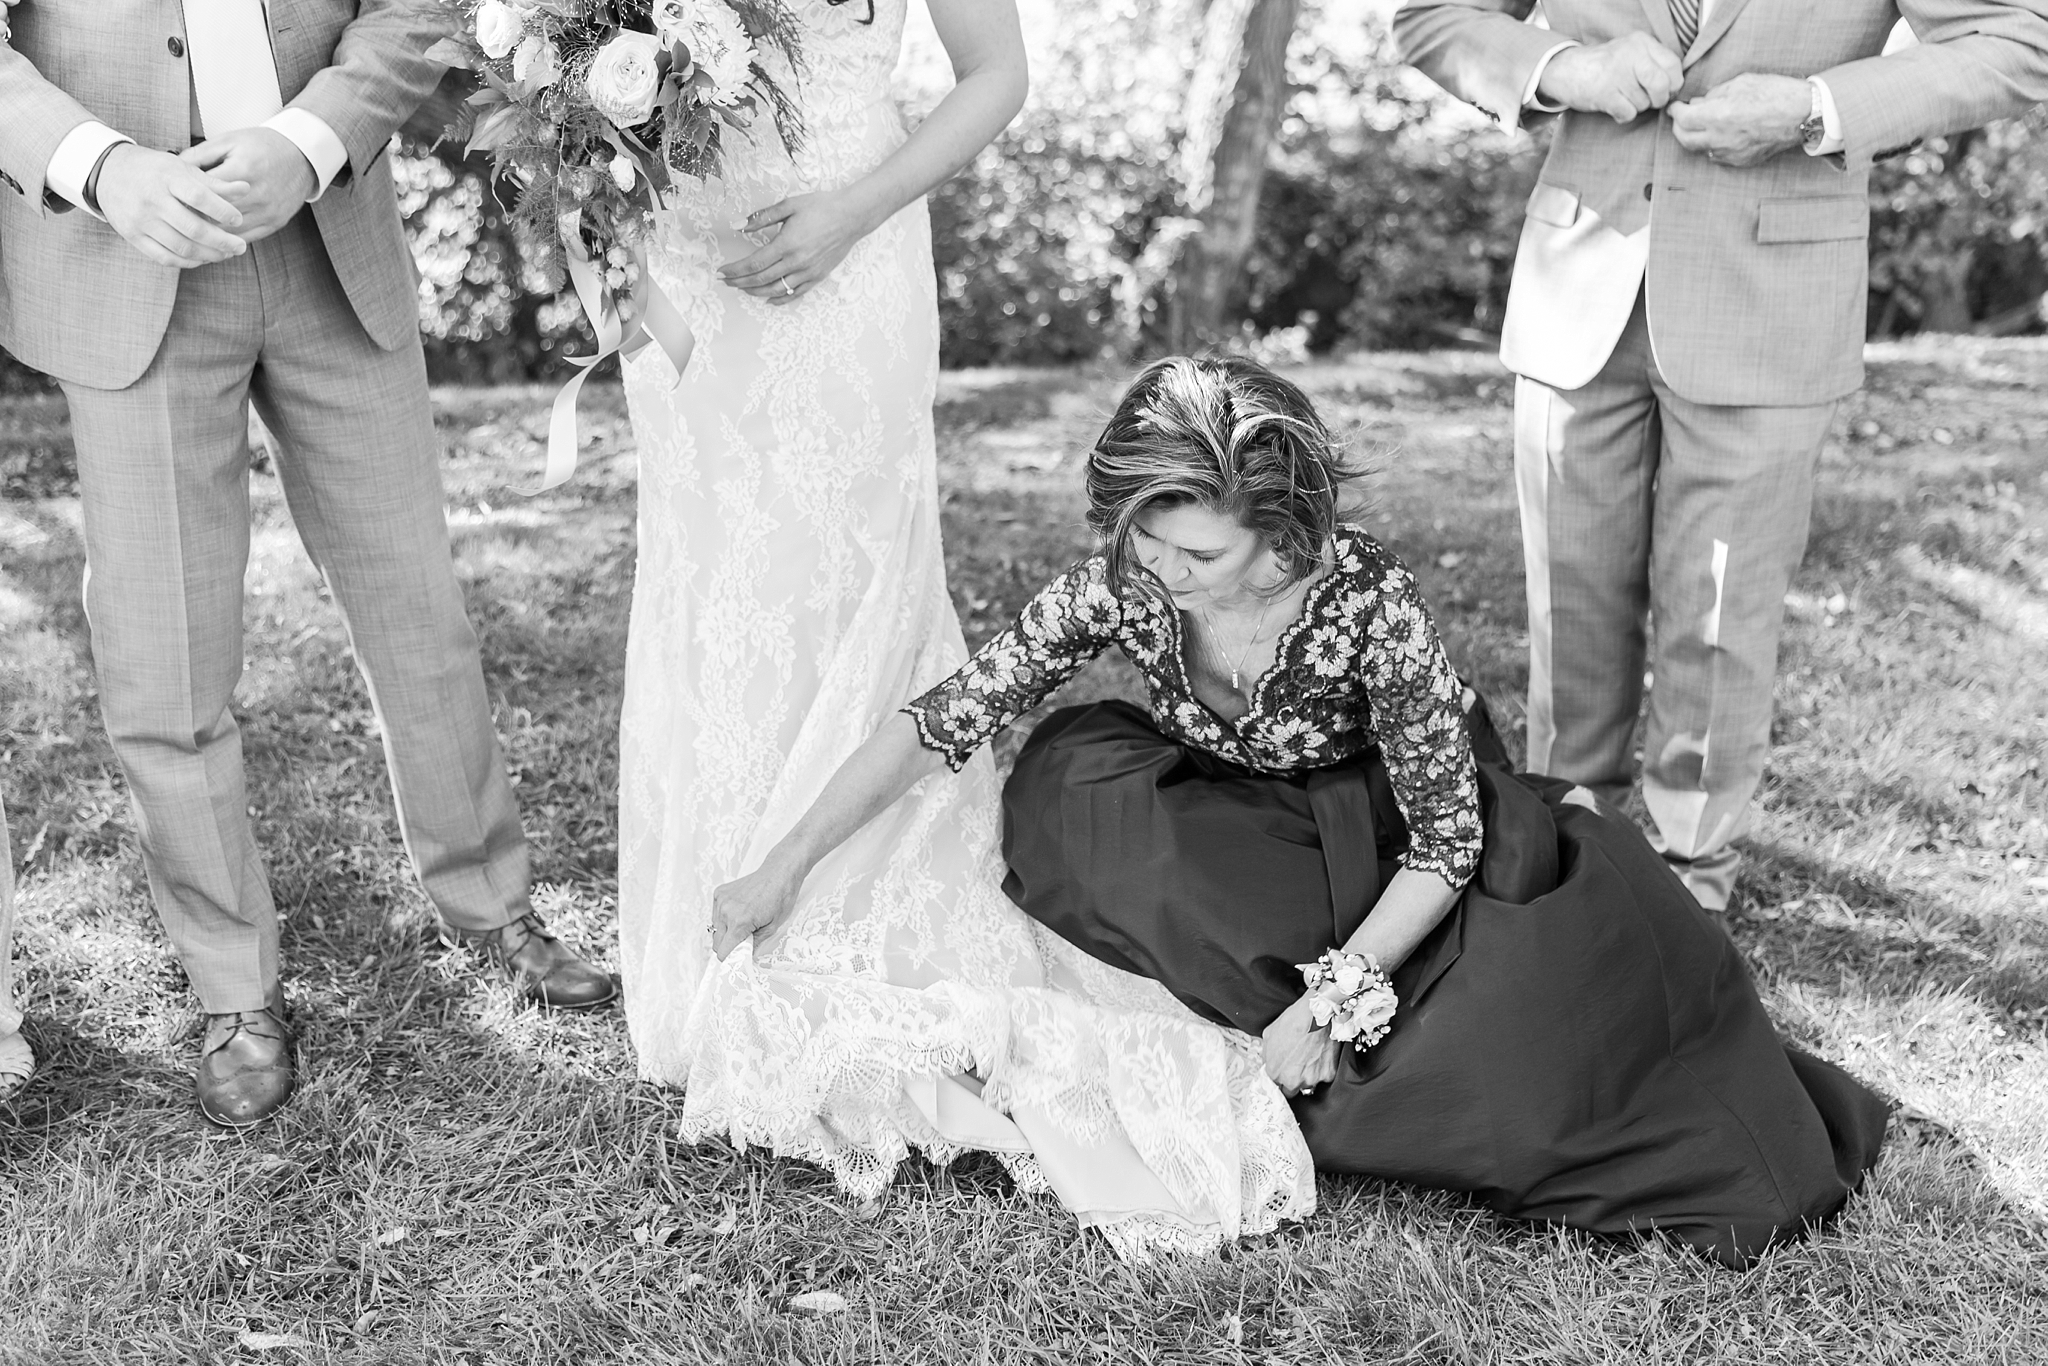 natural-rustic-wedding-photos-at-frutig-farms-the-valley-in-ann-arbor-michigan-by-courtney-carolyn-photography_0049.jpg